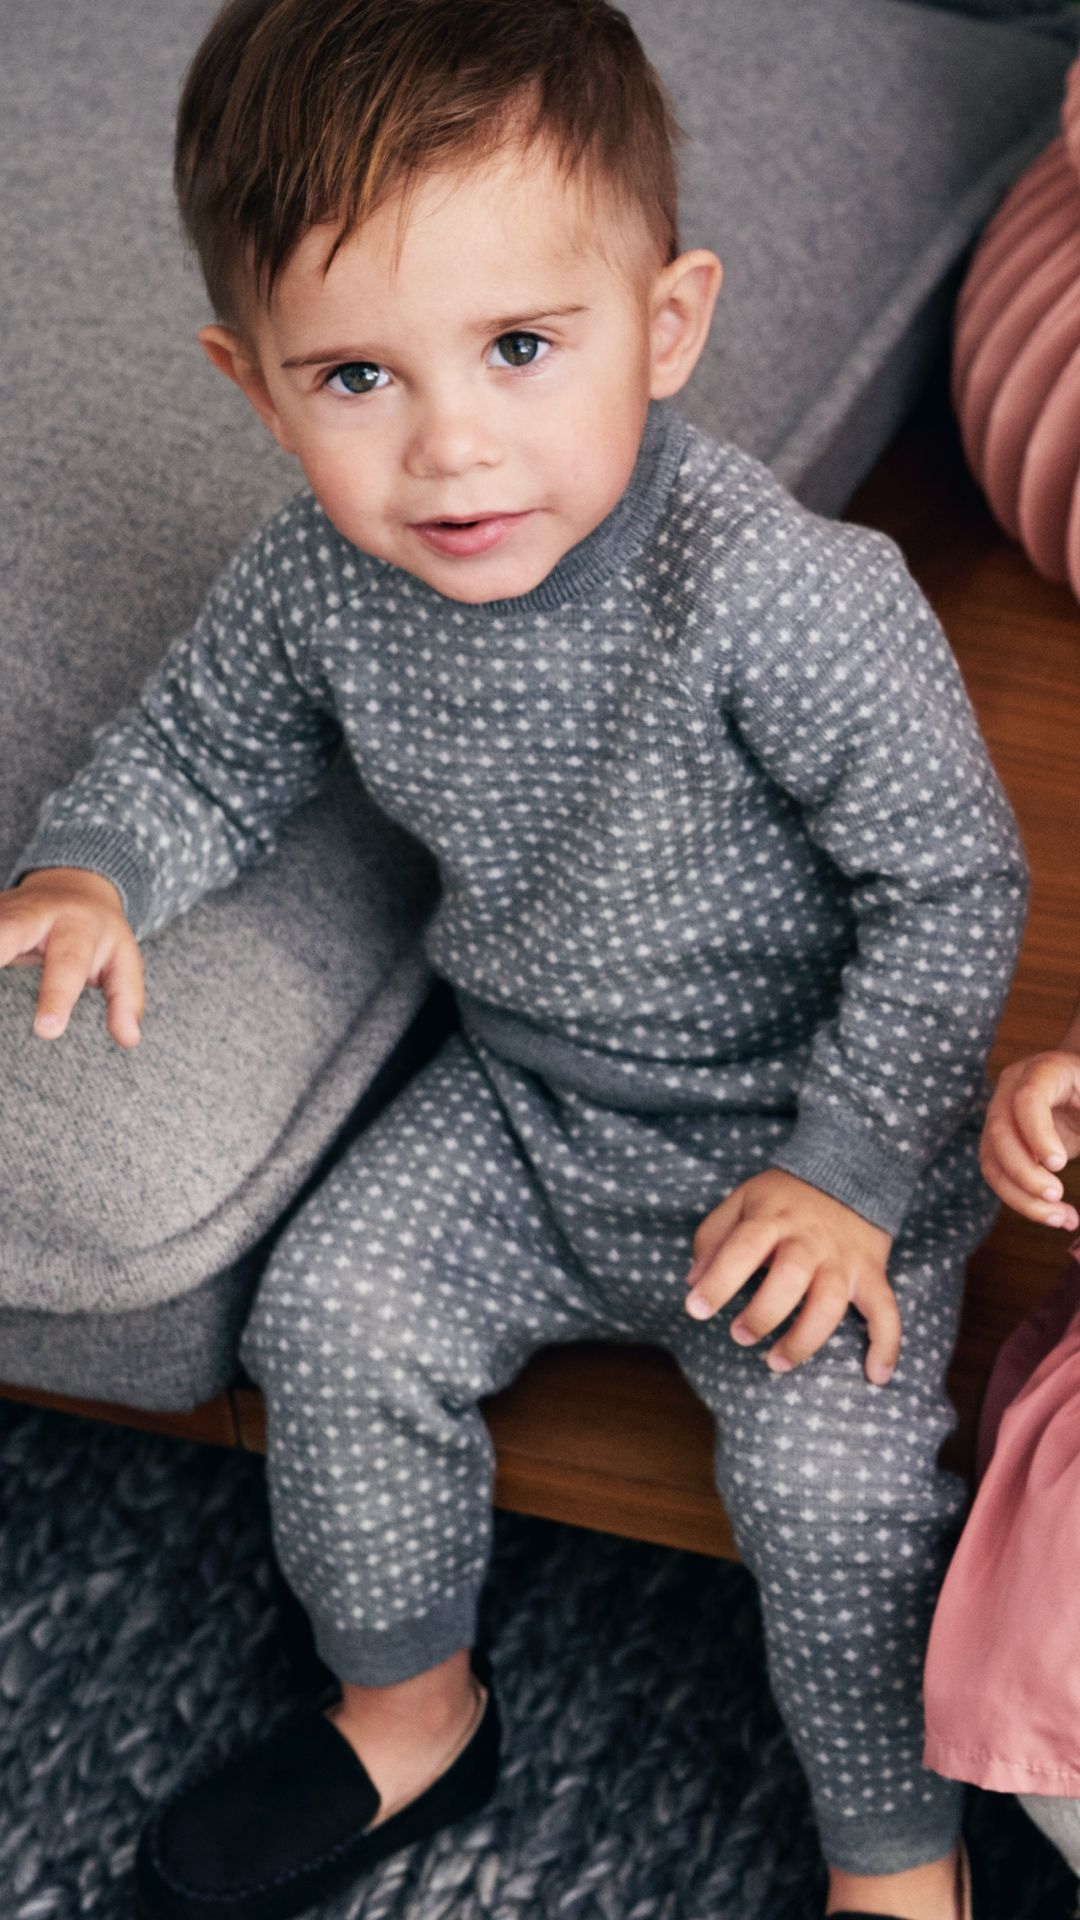 b6a316564c85 Stylish looks catered just for your little ones! Newly arrived ...